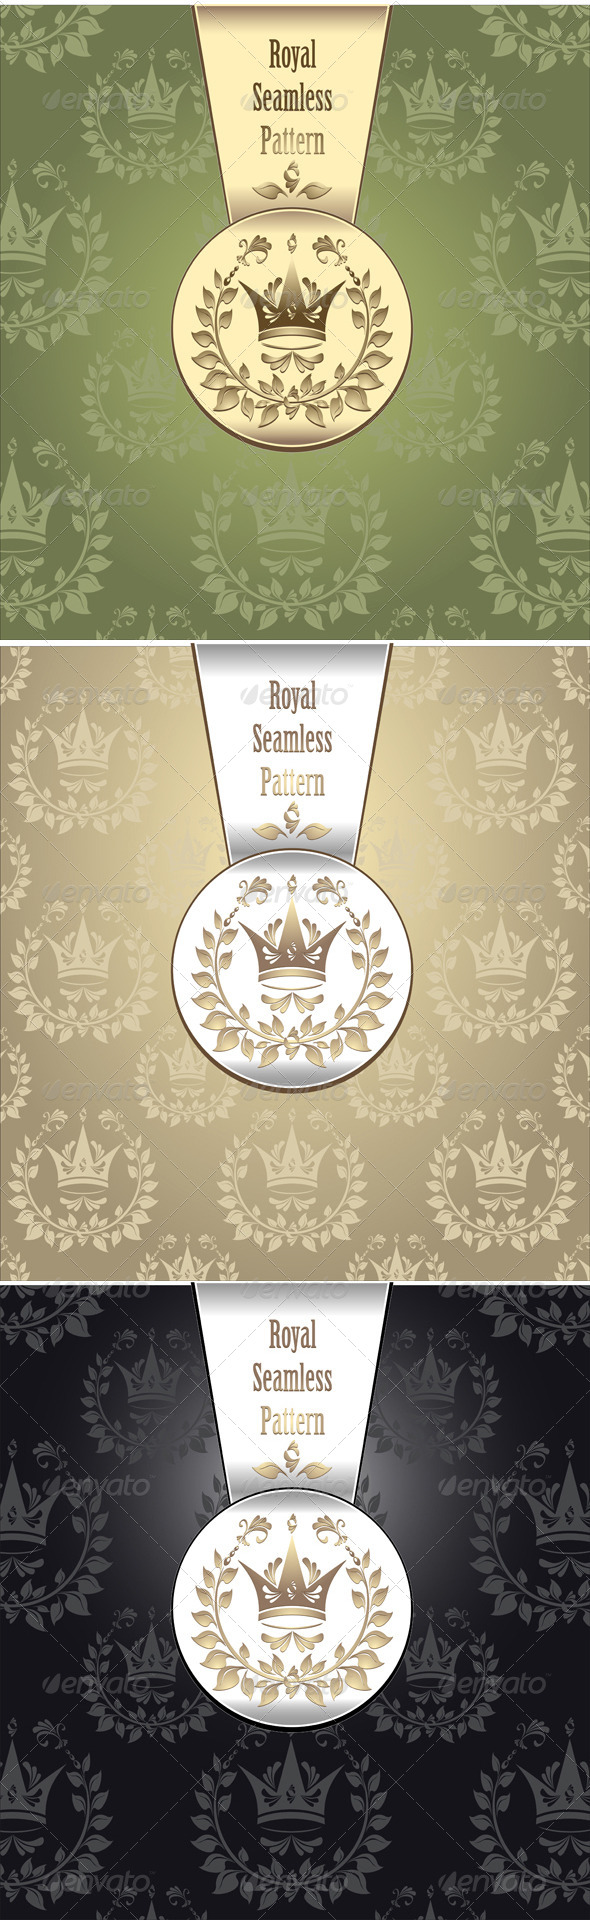 Royal Seamless Pattern with Crown Wreath - Patterns Decorative